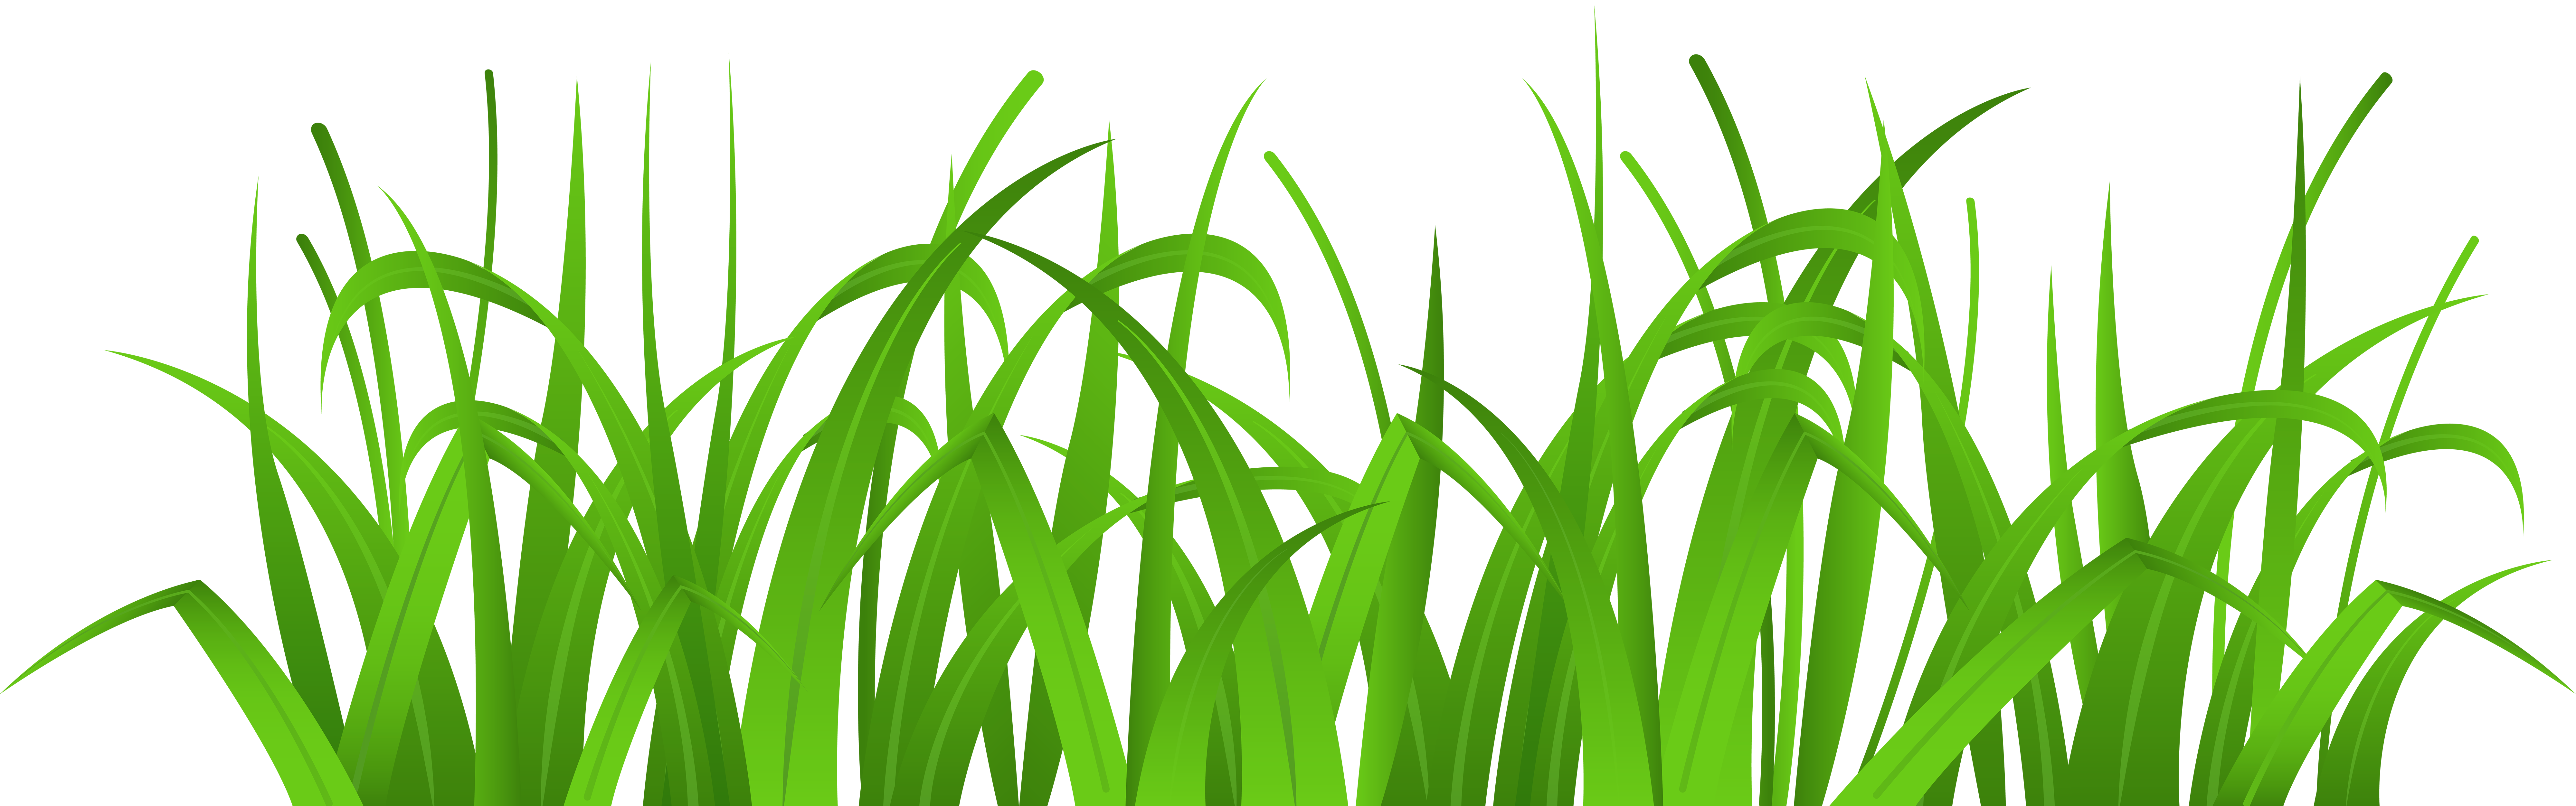 graphic freeuse download Cover png clip art. Grass clipart